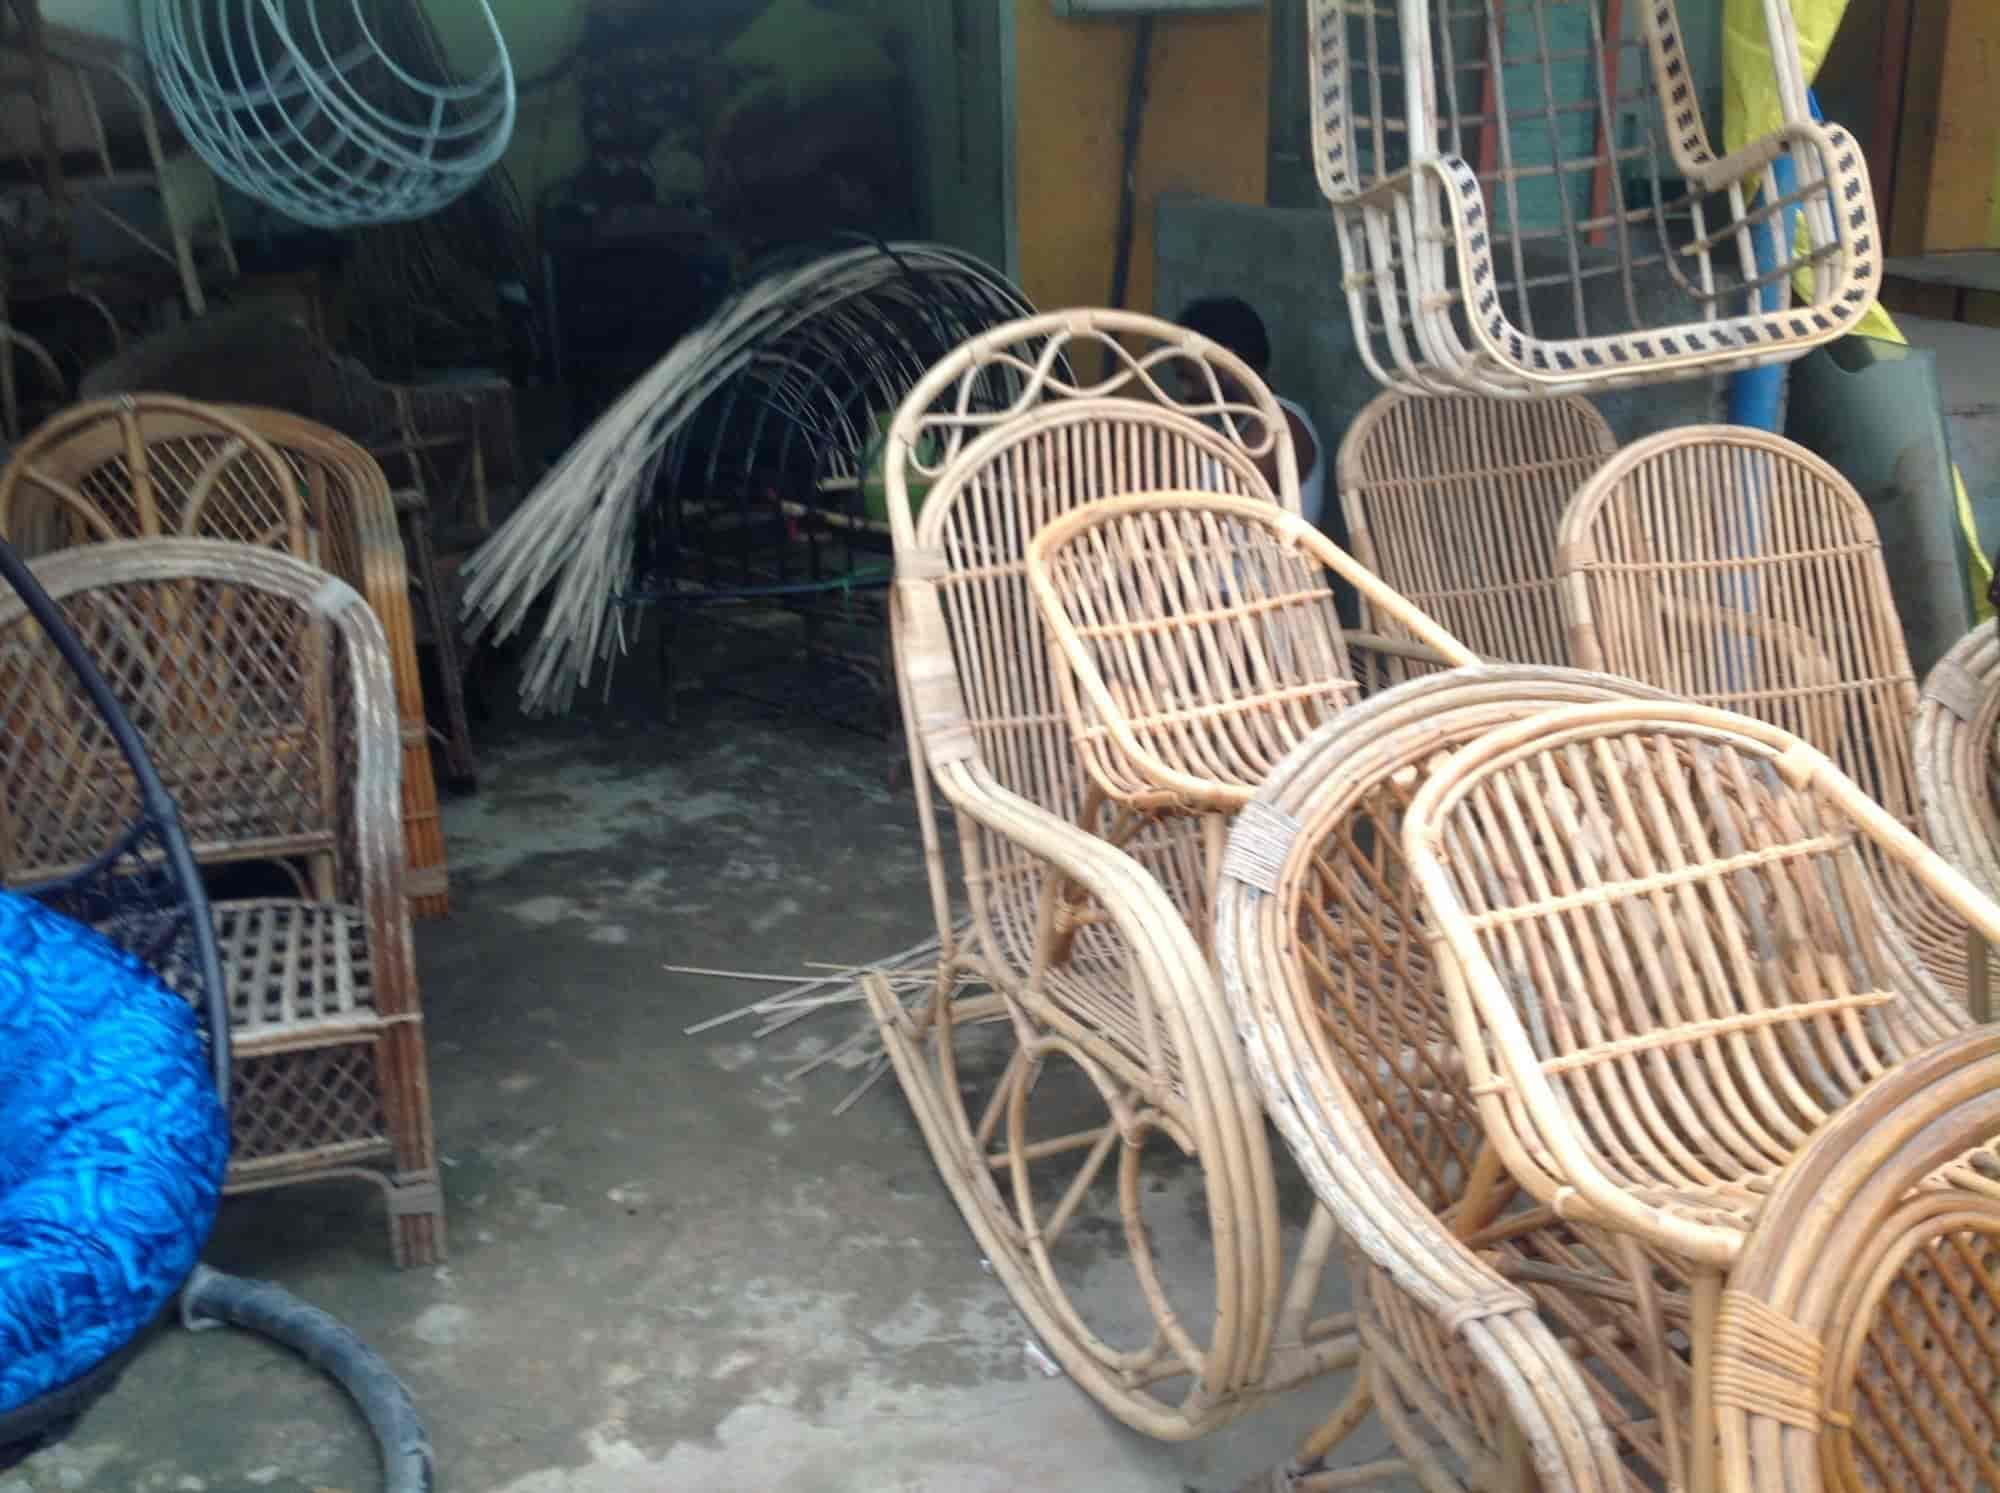 Shalom Cane Furnitures, Ramamurthy Nagar   Furniture Dealers In Bangalore    Justdial